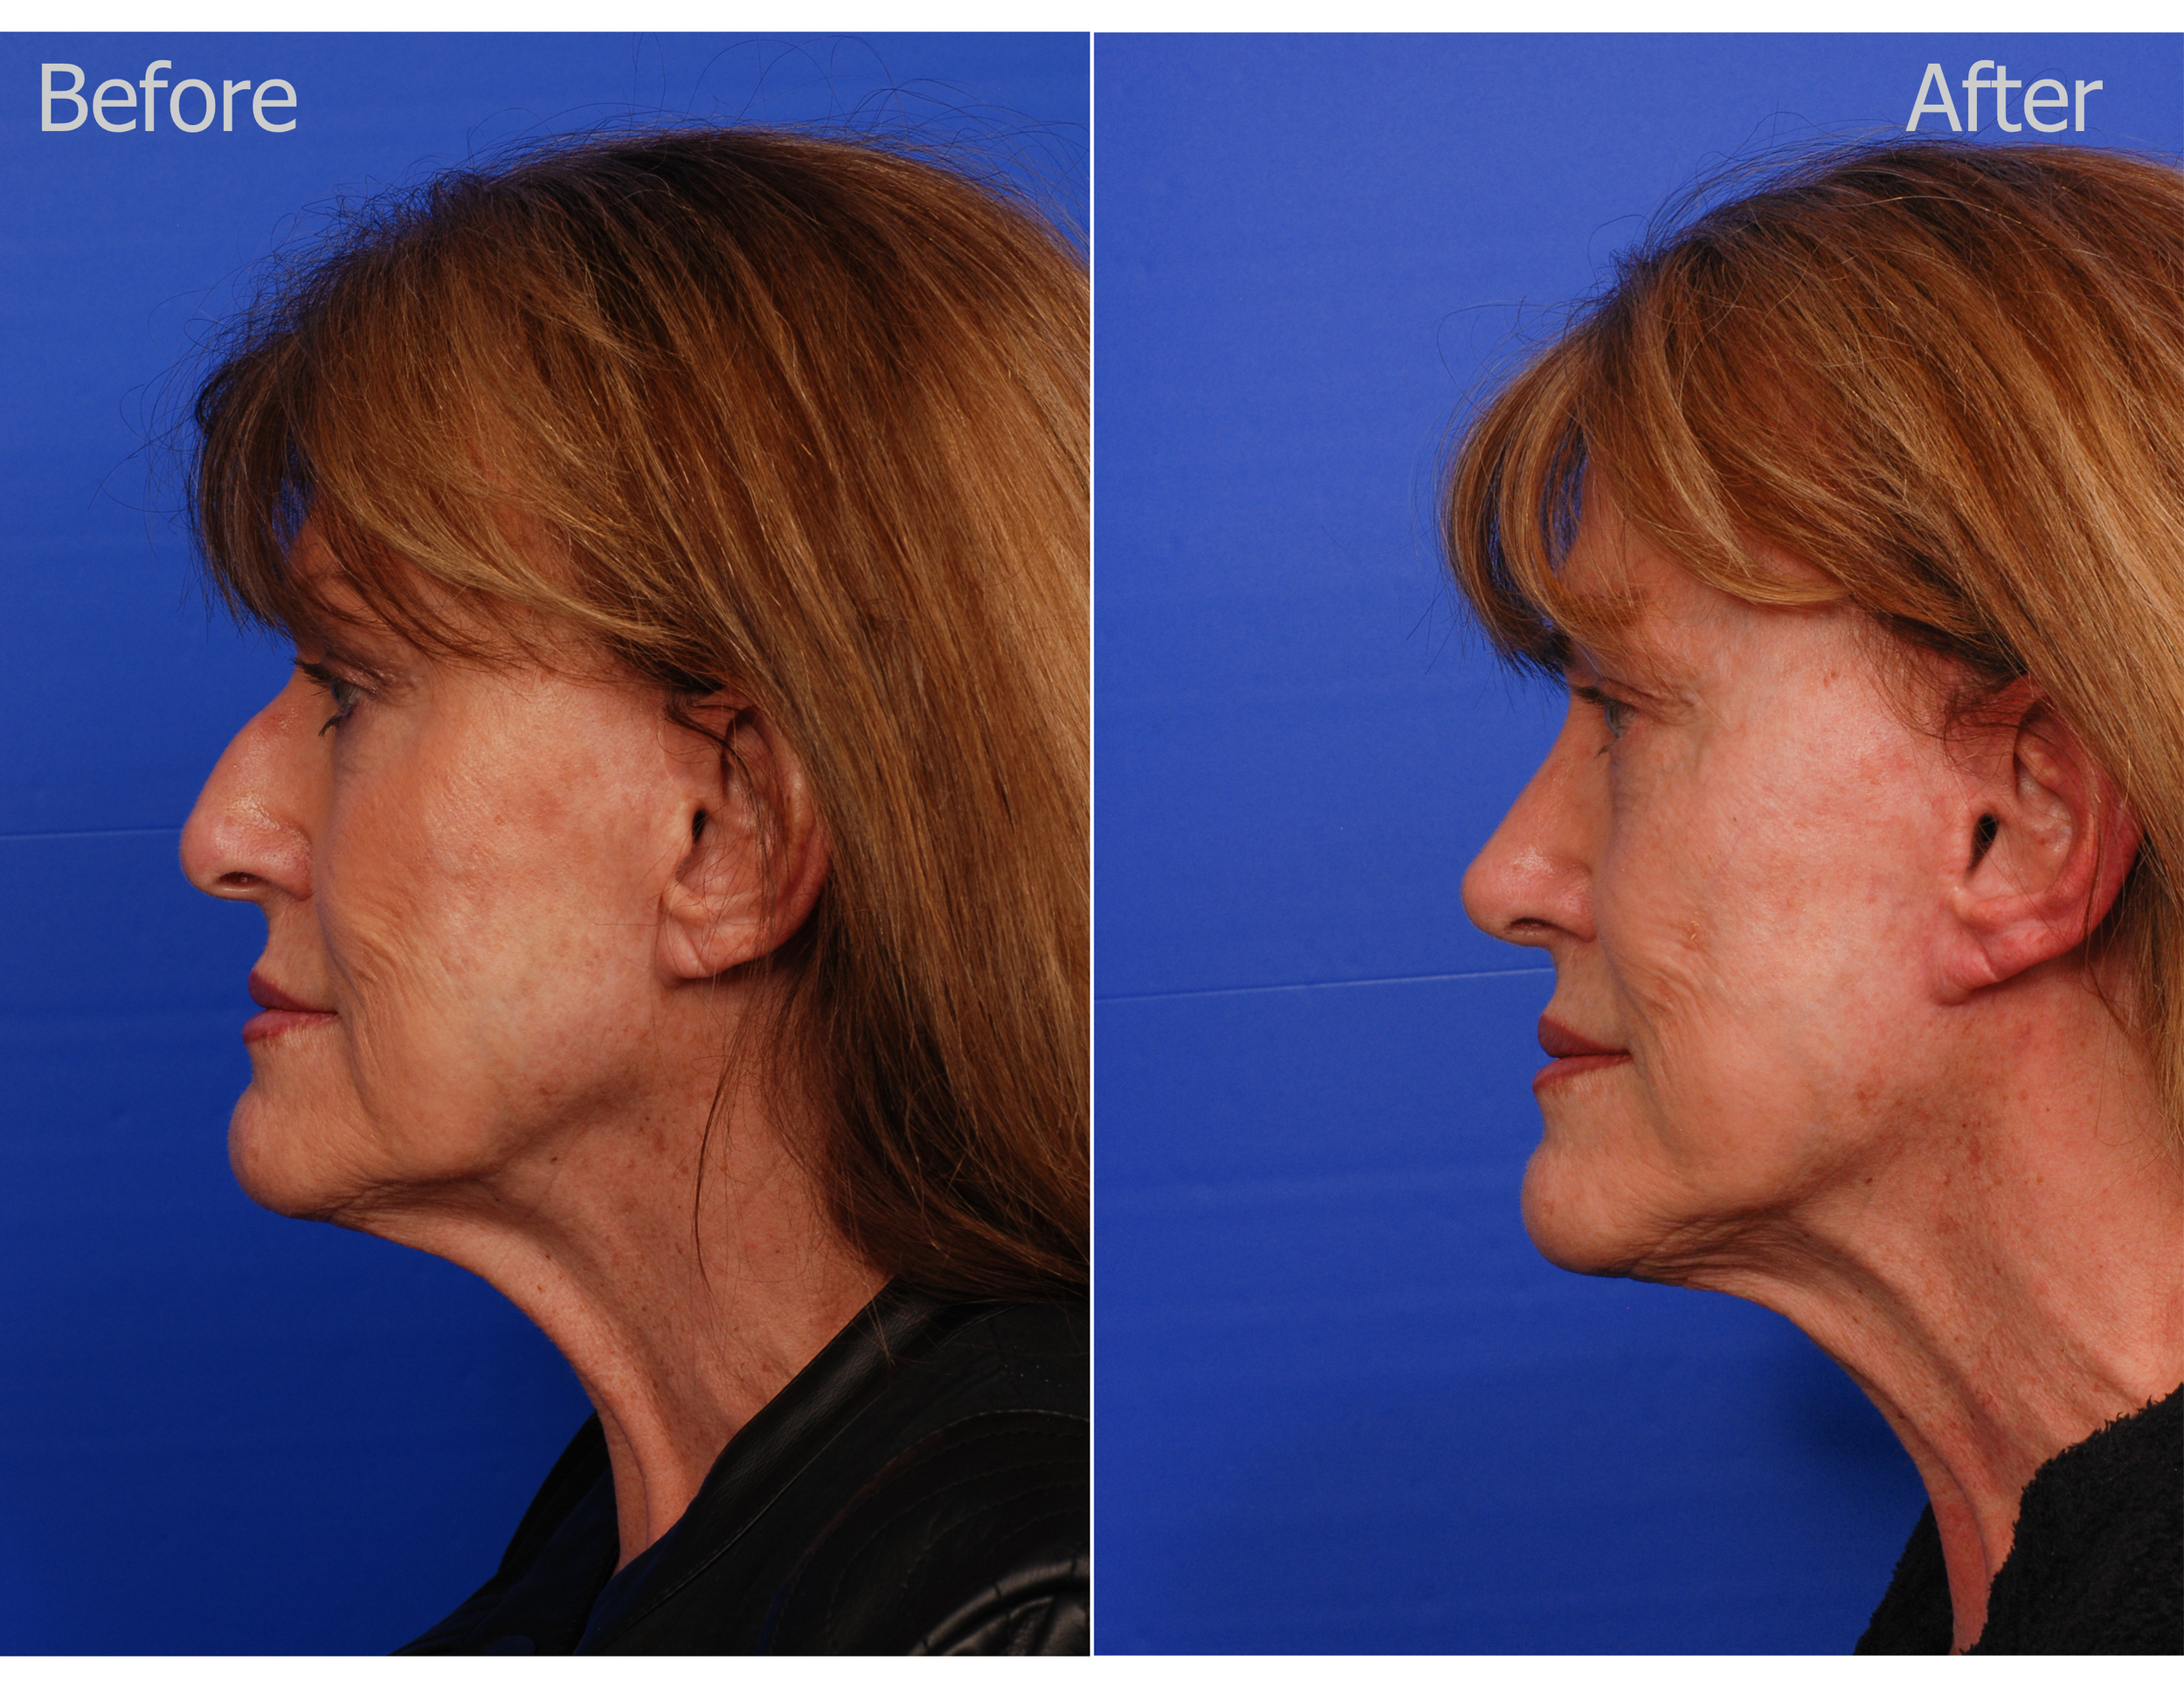 Diary of a Rhinoplasty Patient: New Nose Review — SKY Facial